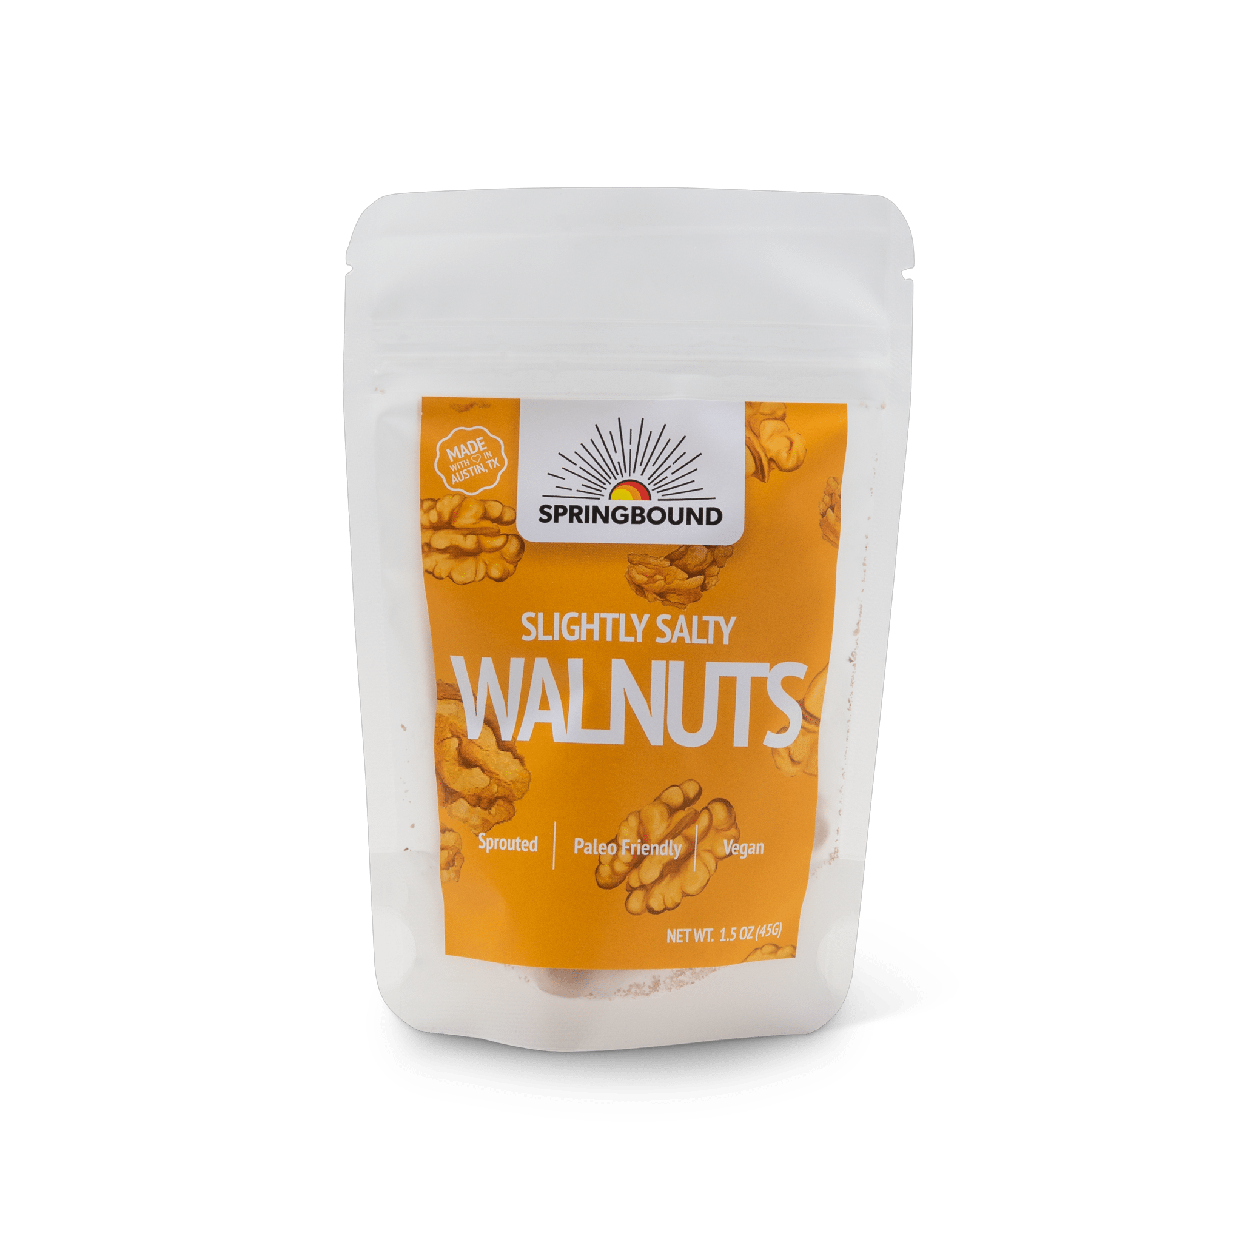 springbound nutz - slightly salty walnuts